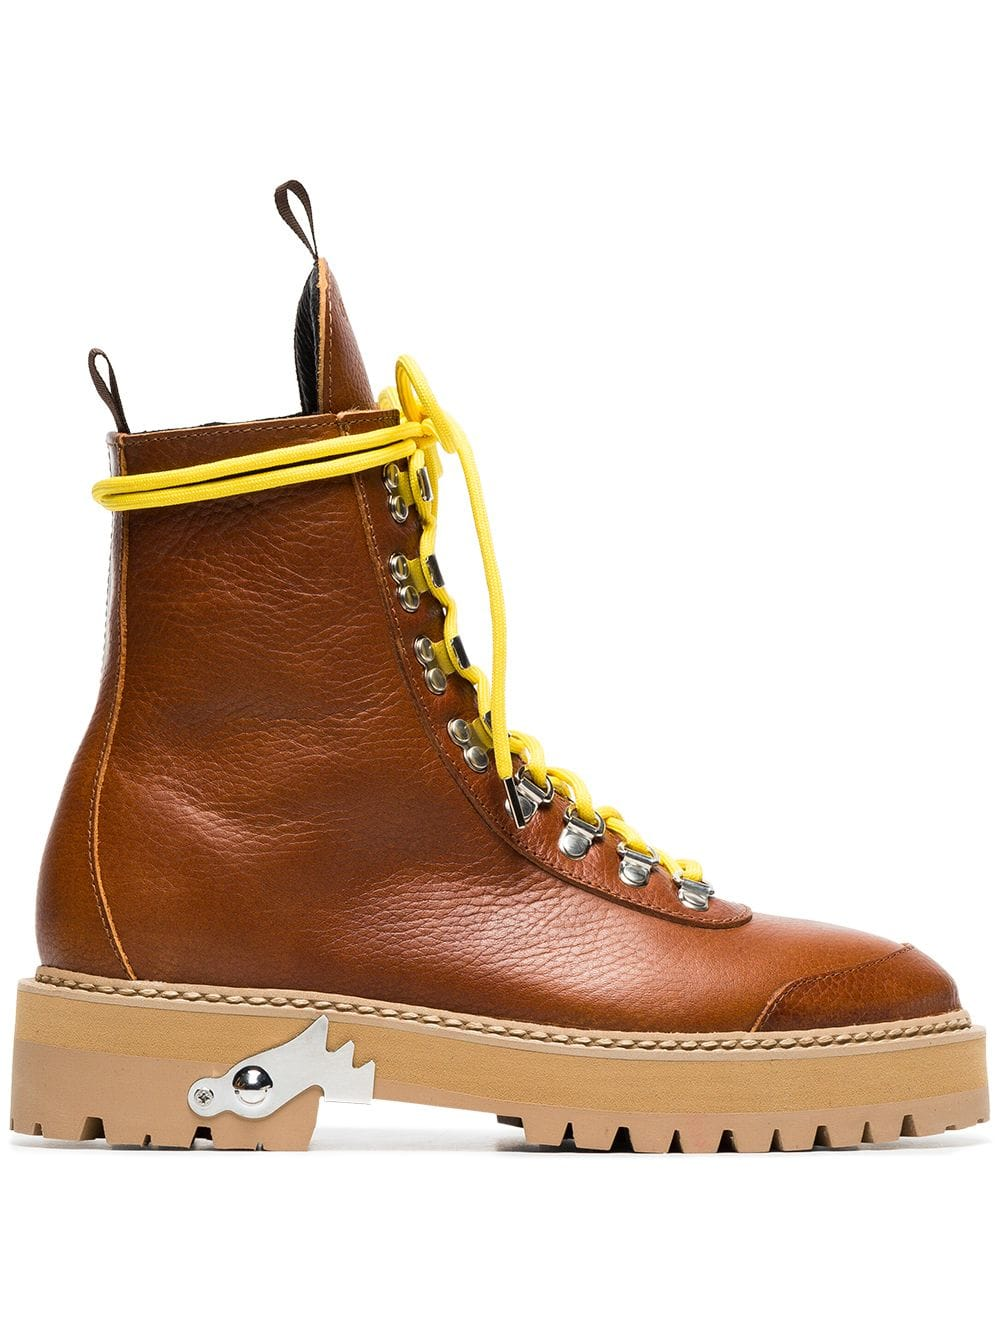 shop-off-white-camel-leather-lace-up-hiking-boots